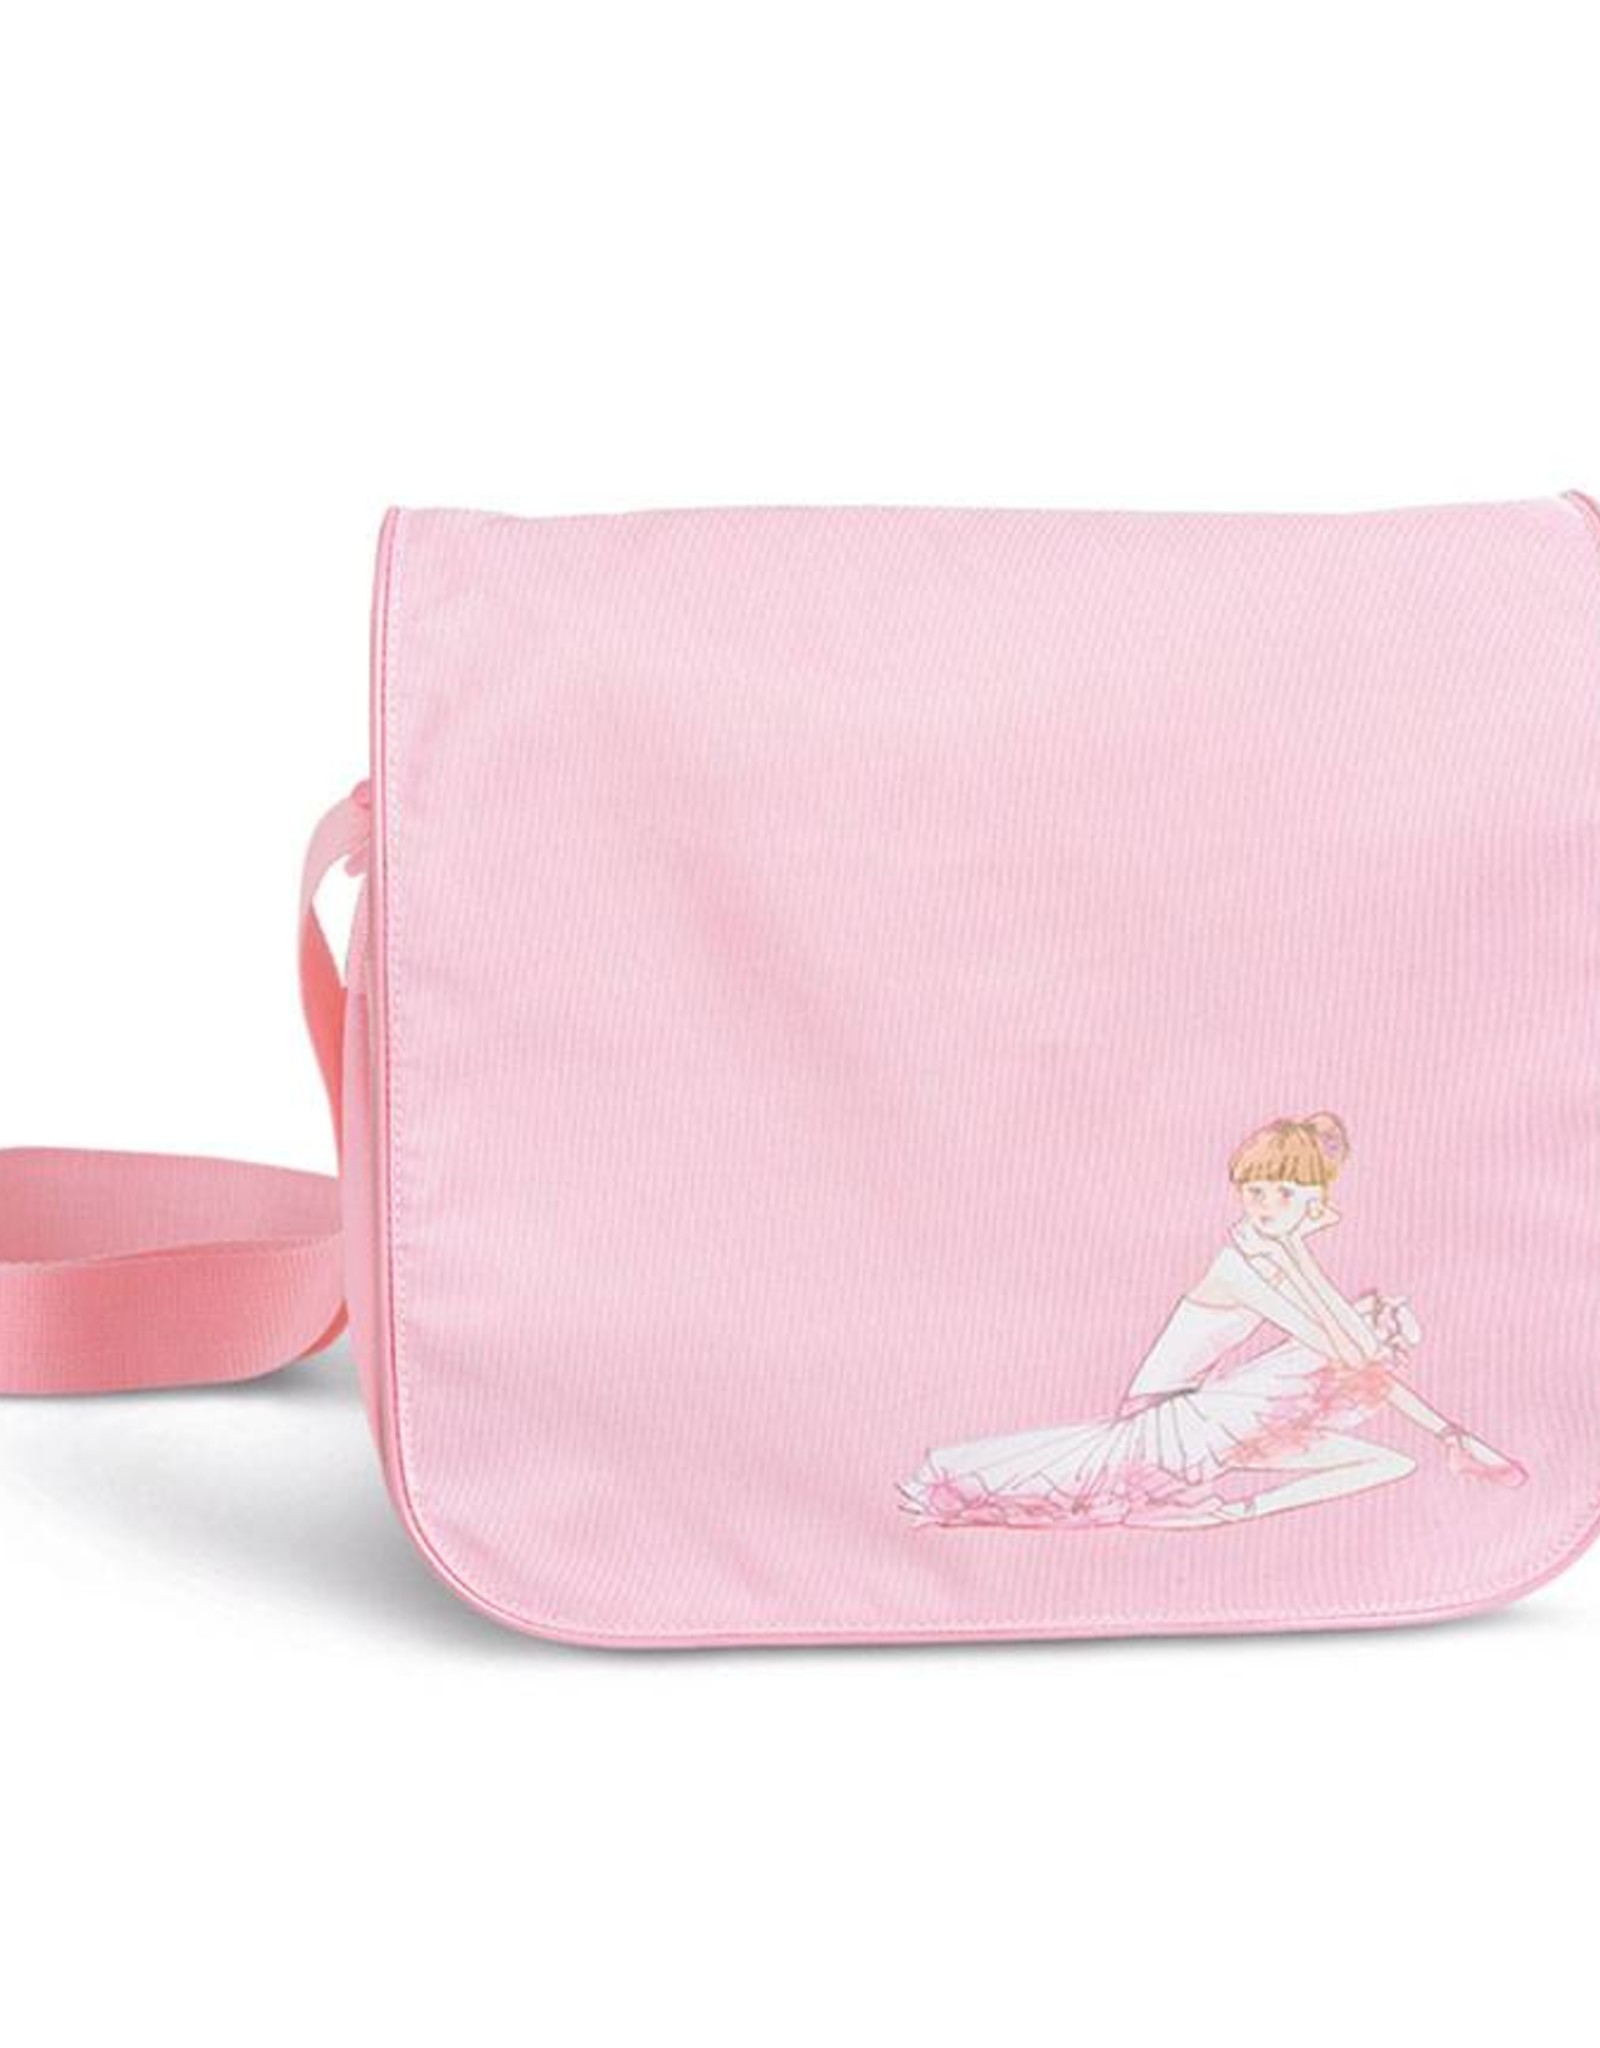 Bloch Bloch Girls Shoulder Bag - A322